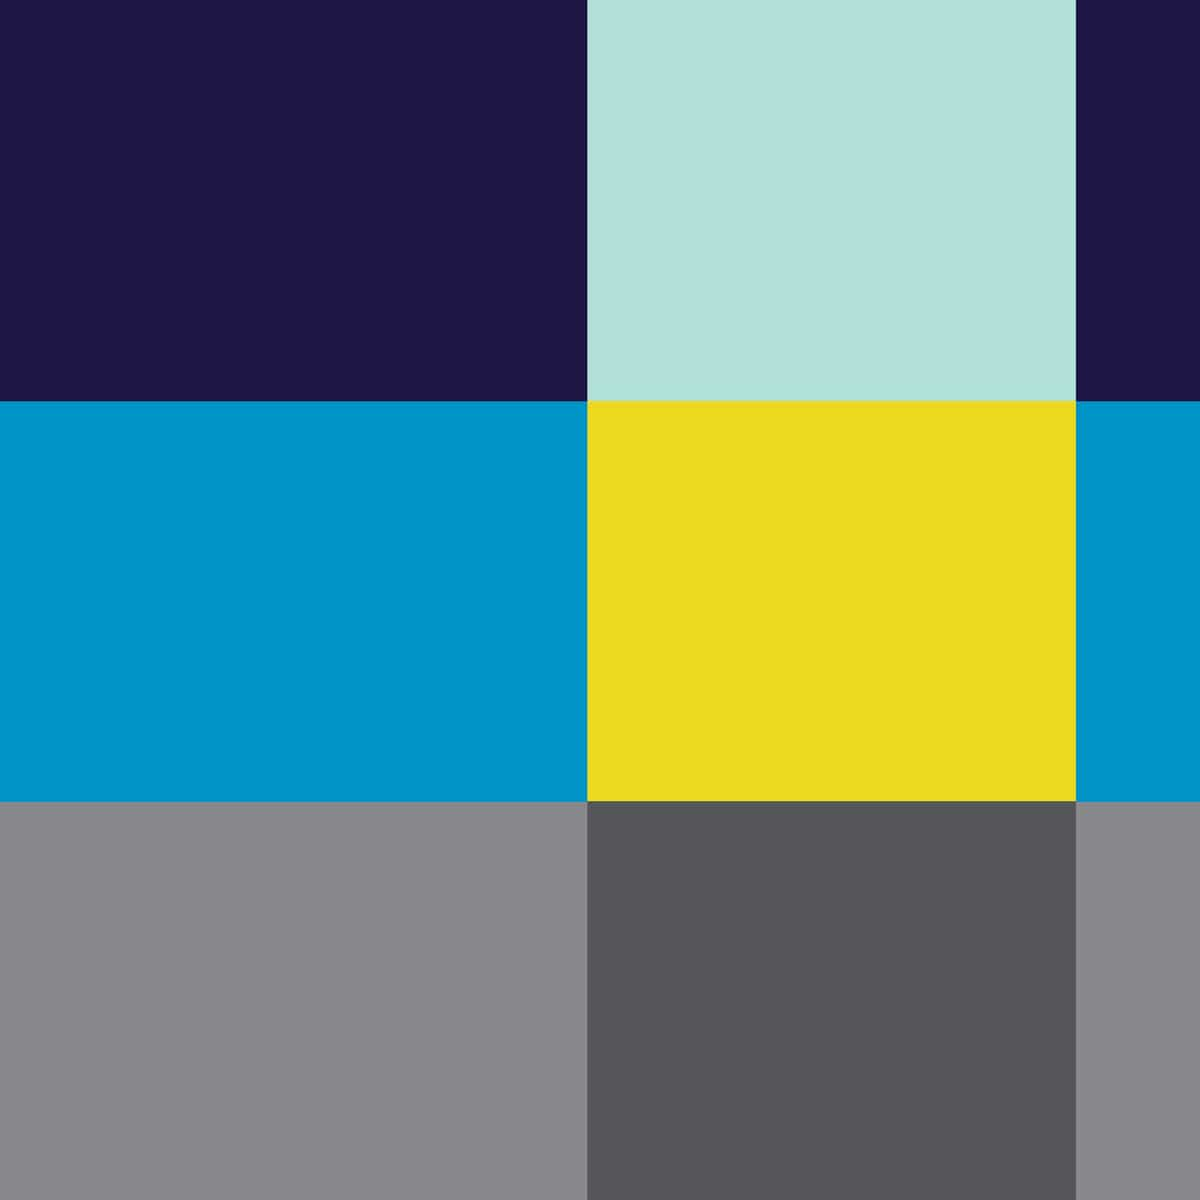 Startup branding color palette for Sky Republic Inc. rebrand